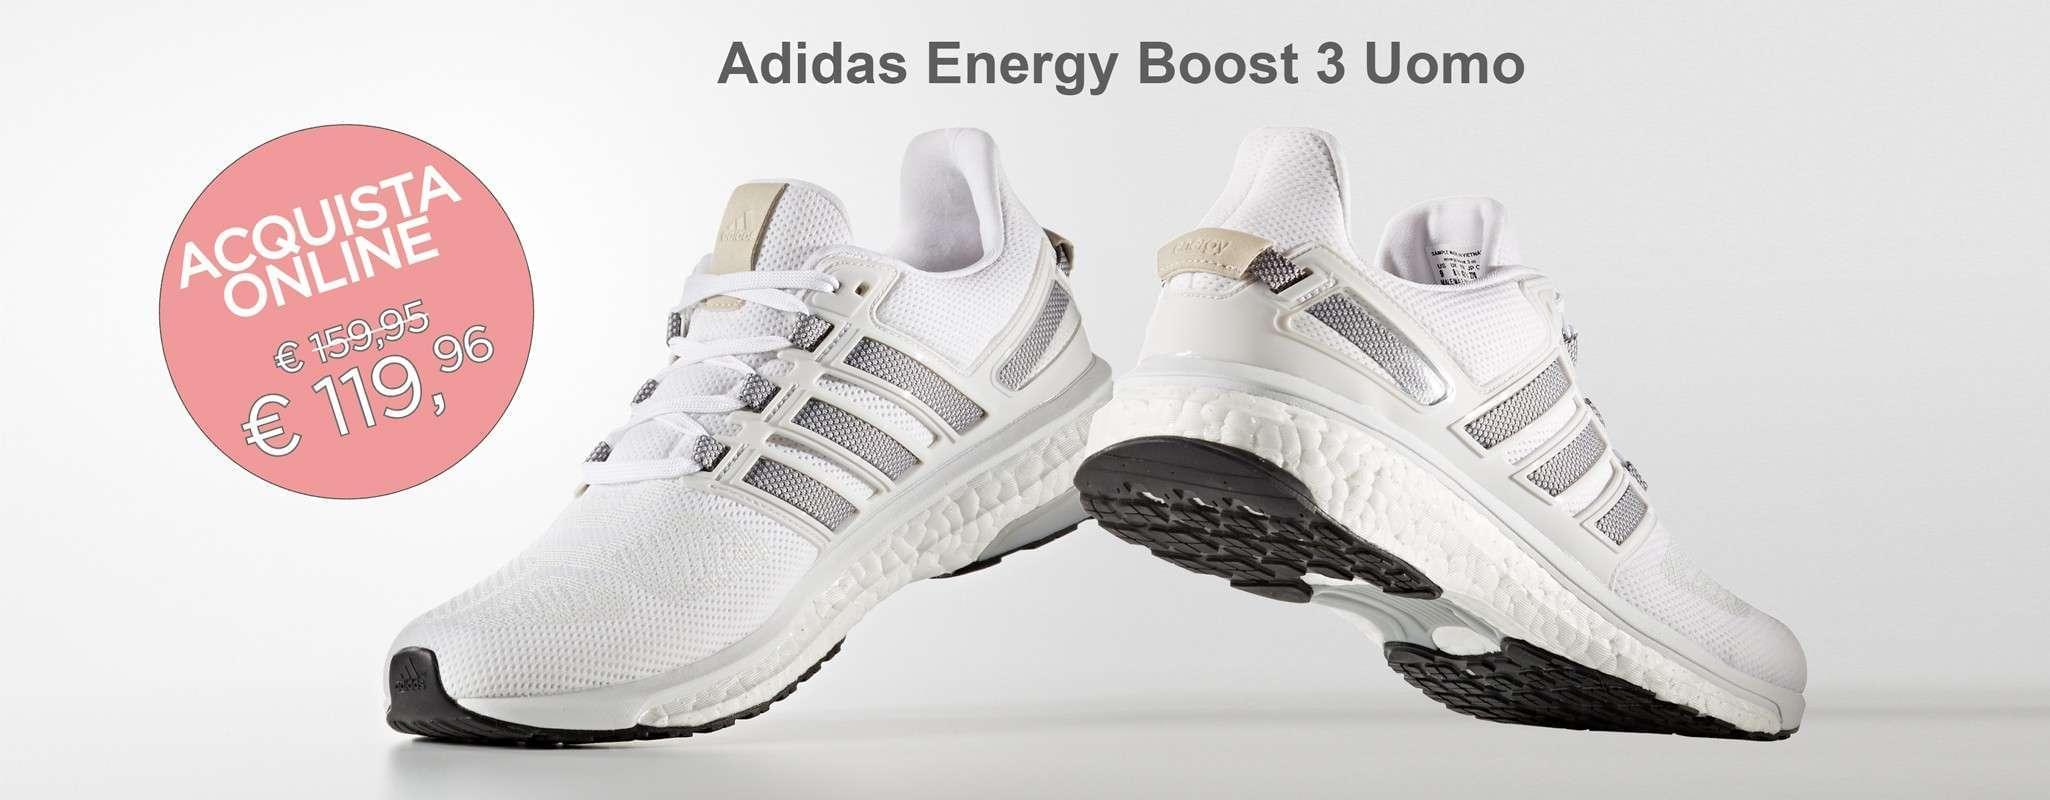 Adidas Energy Boost Uomo